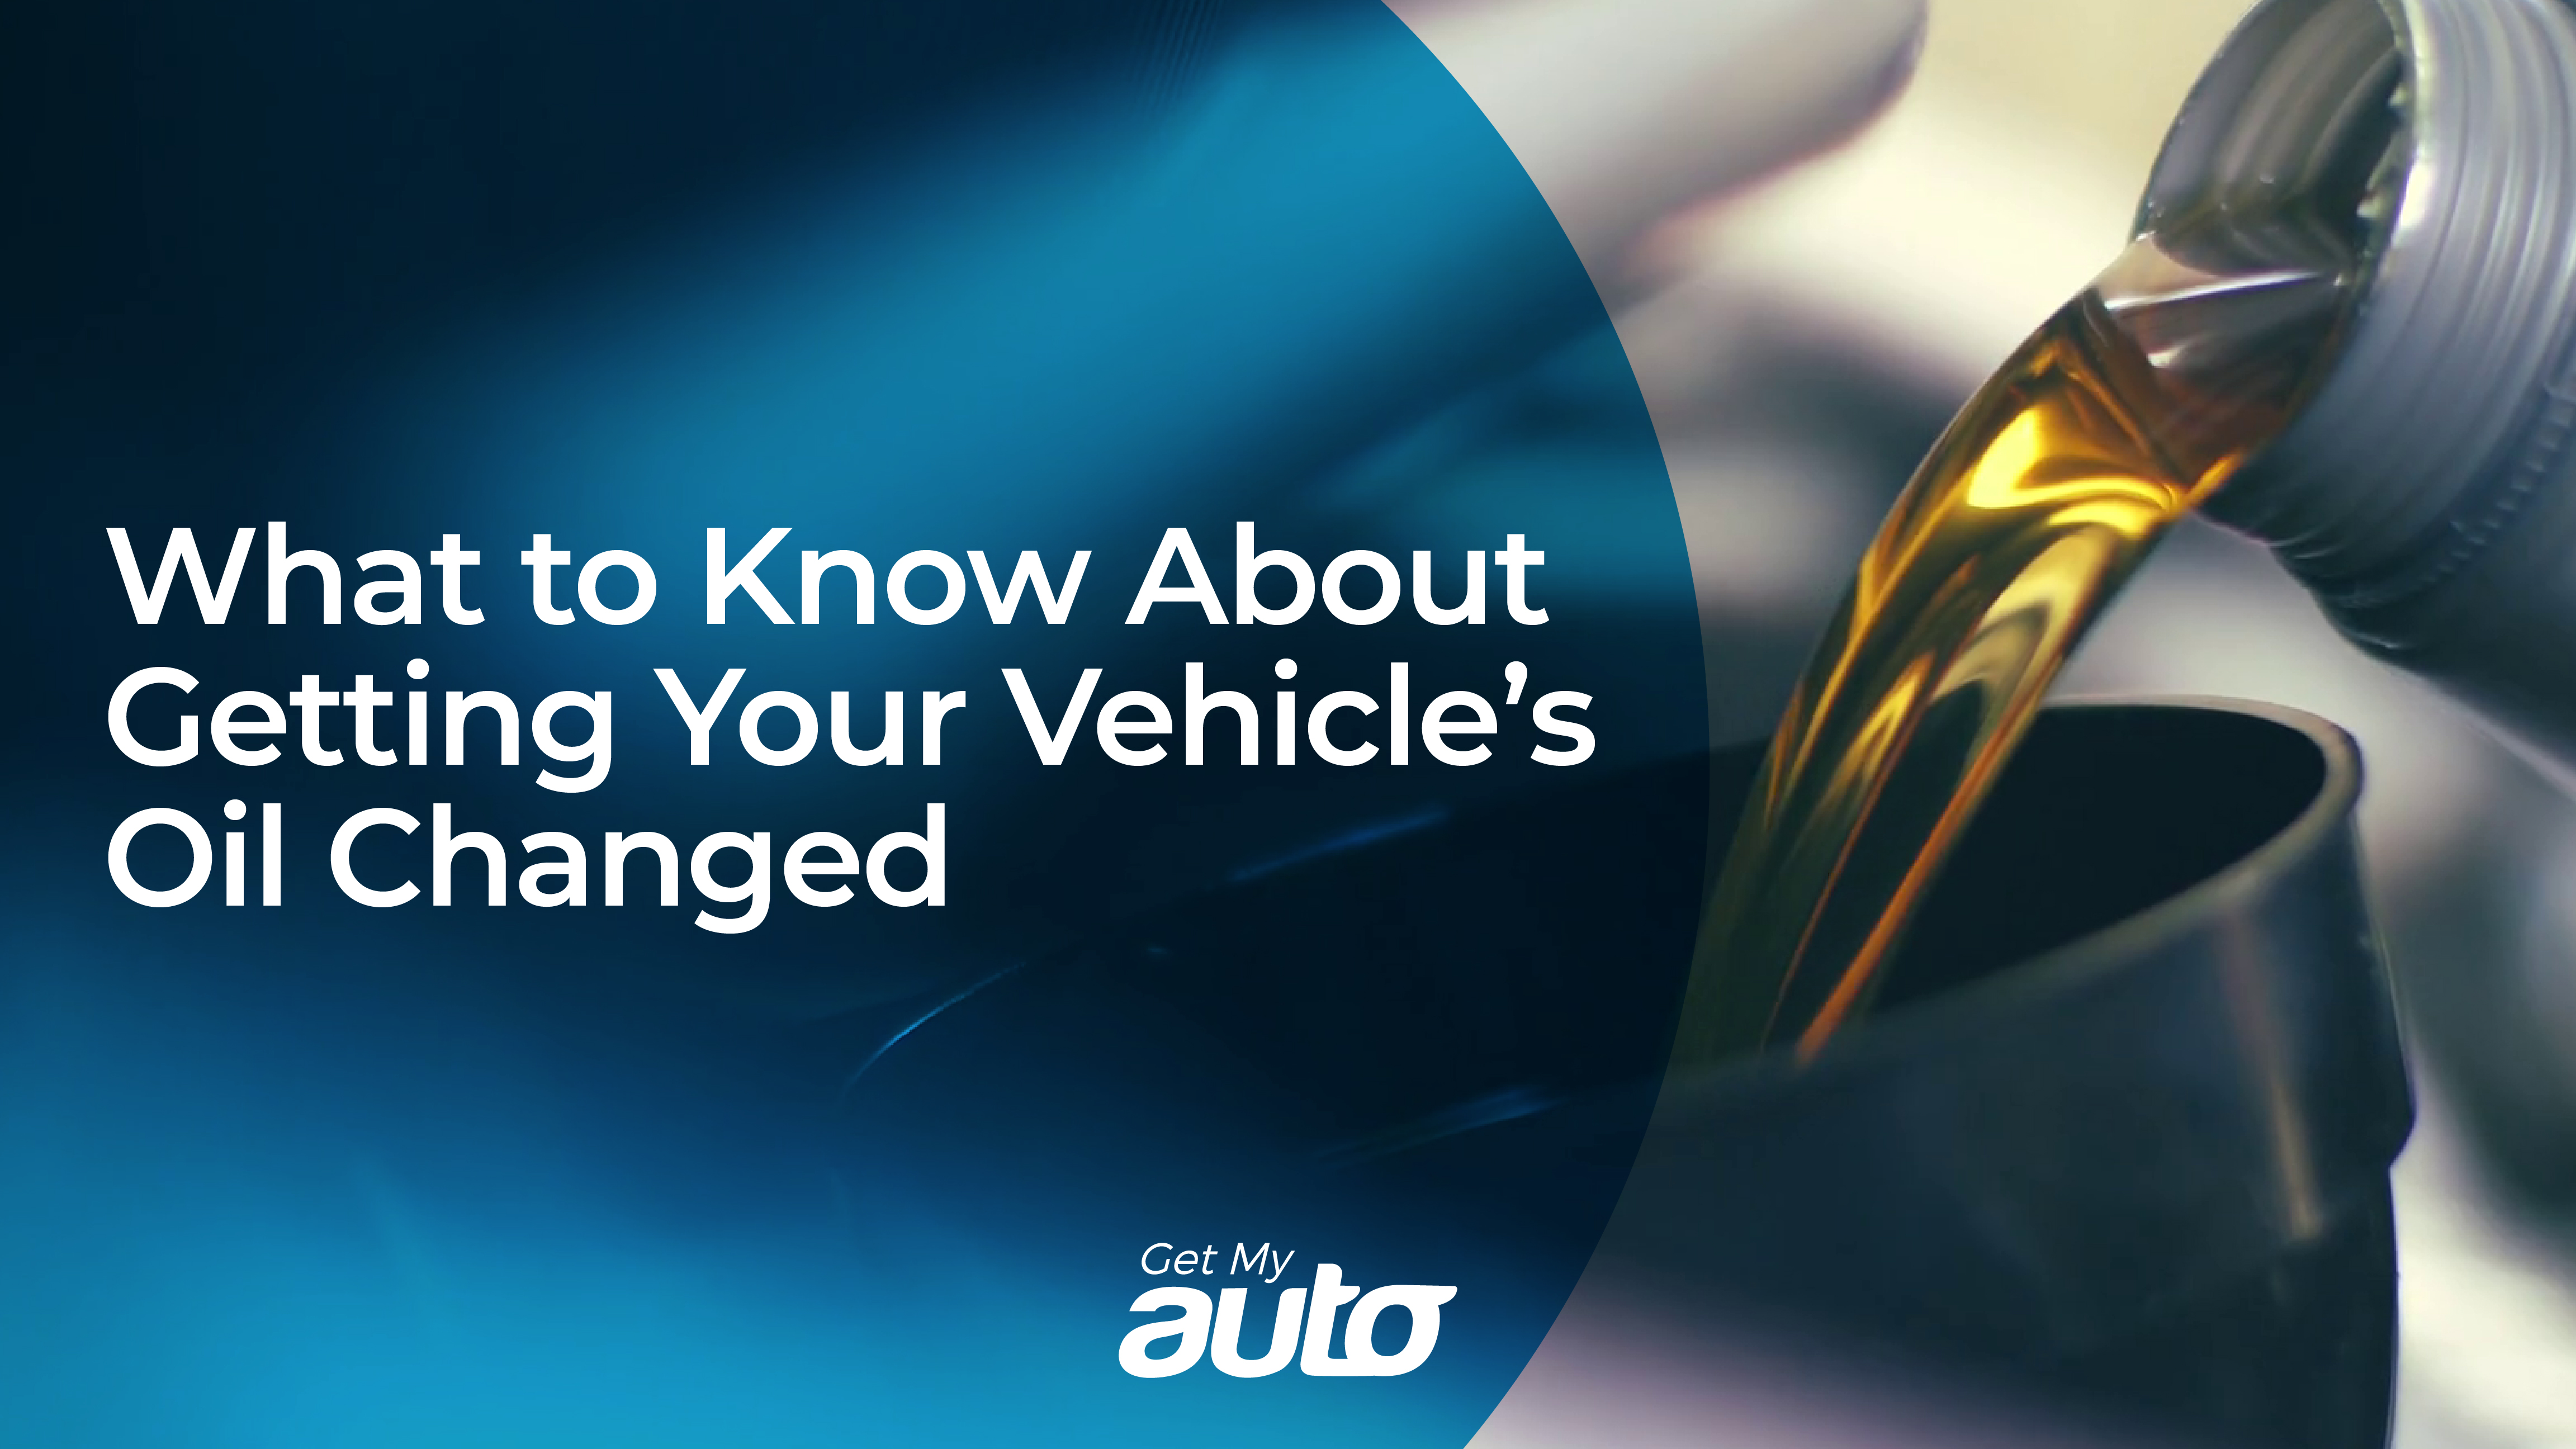 What to Know About Getting Your Vehicle's Oil Changed GetMyAuto